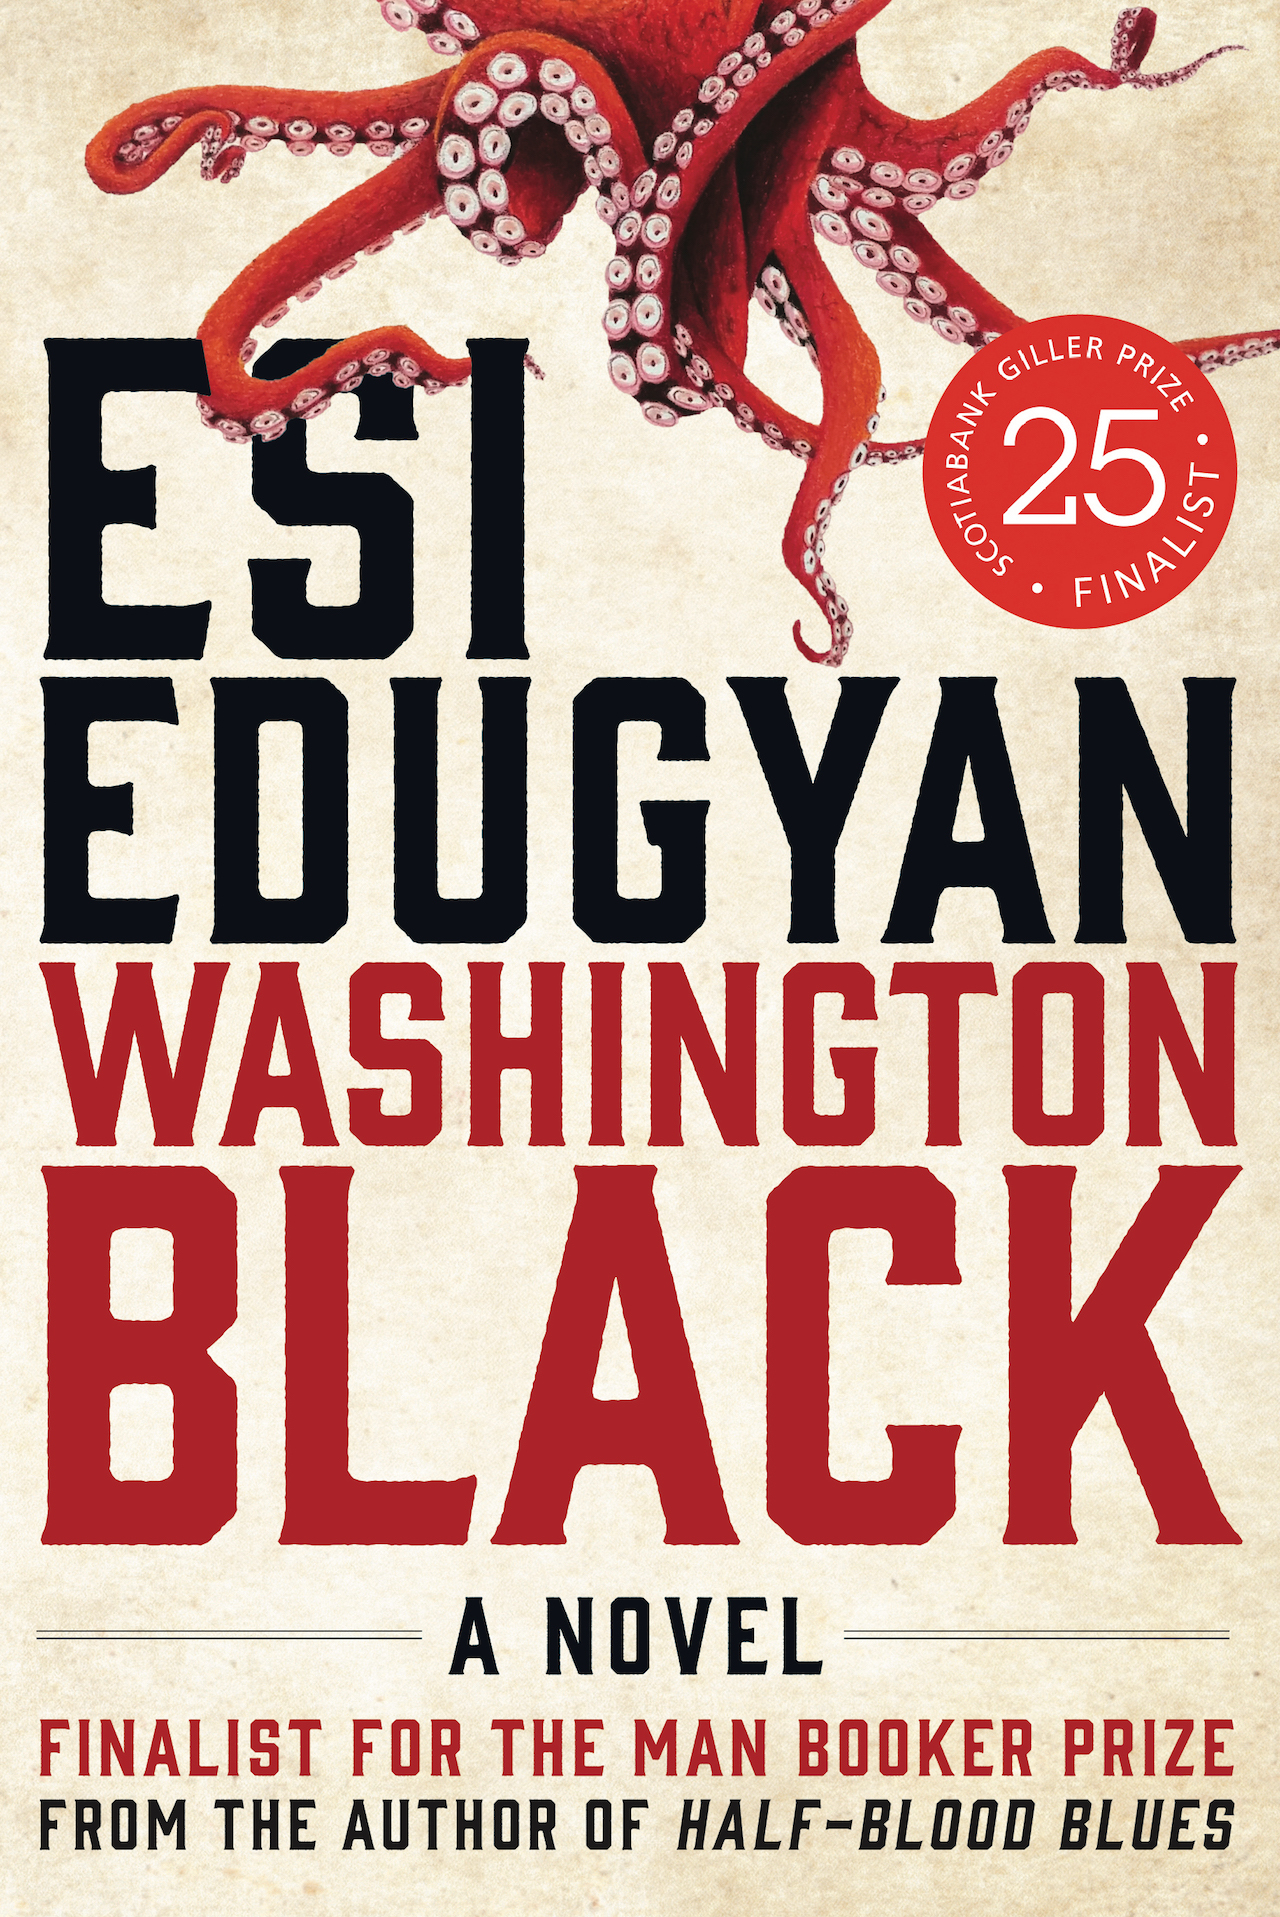 Washington Black by Esi Edugyan cover image features black and red writing with an octopus in the background